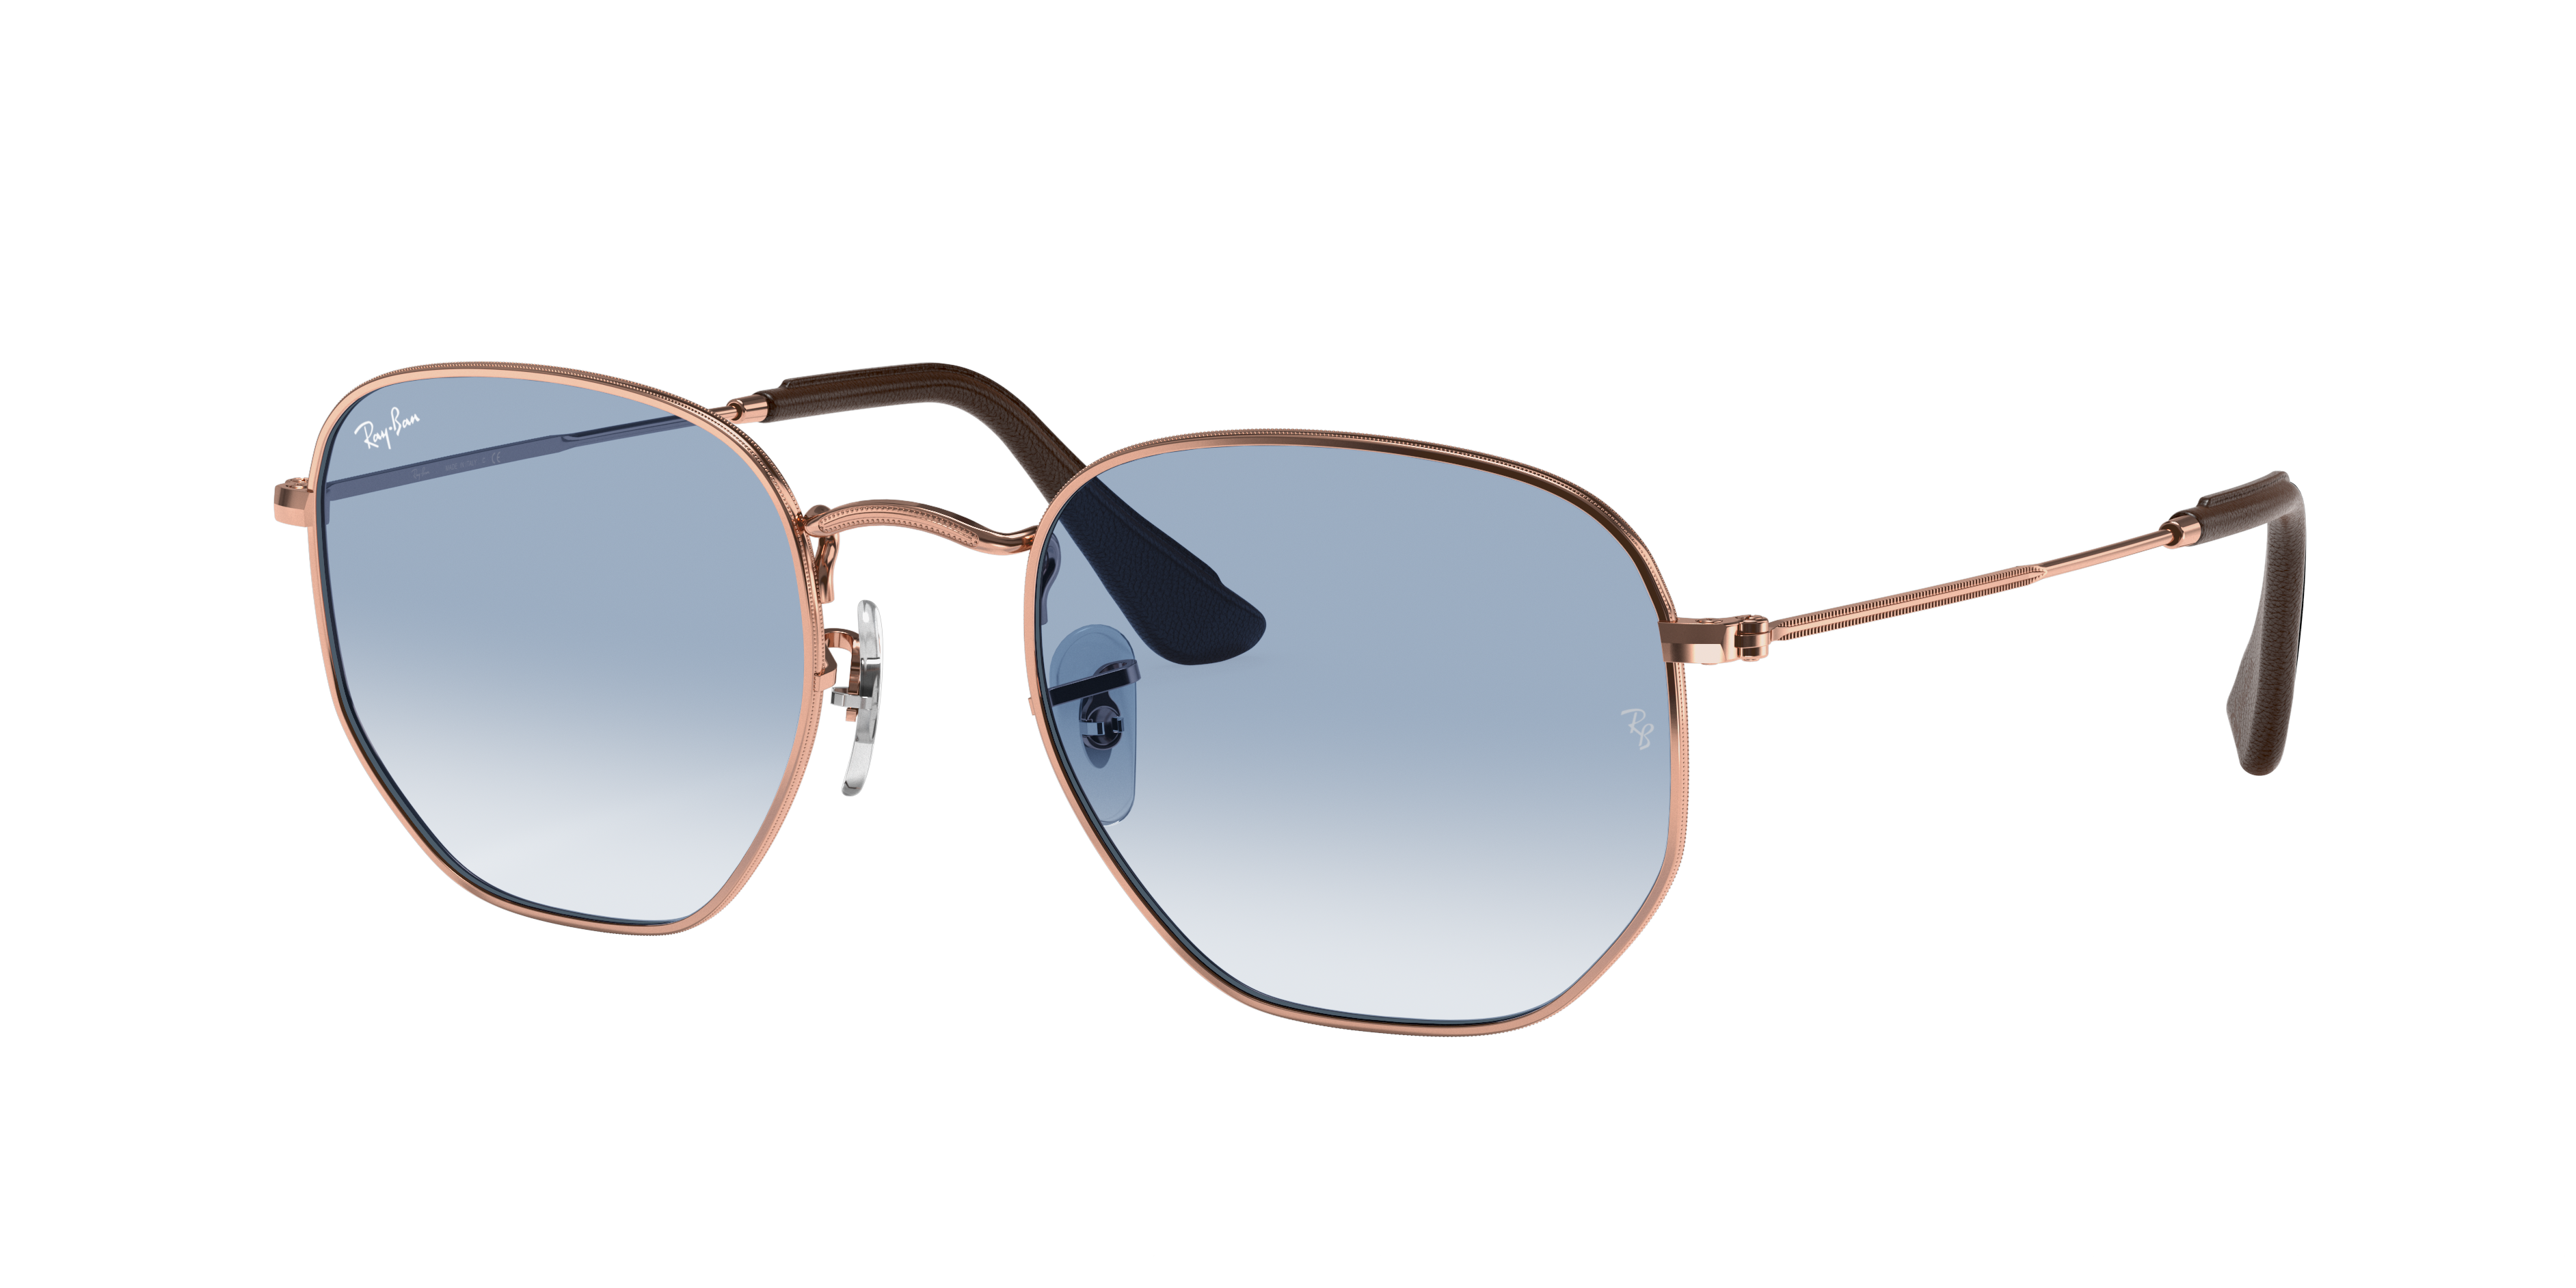 Ray-Ban Hexagonal @collection Bronze-Copper, Blue Lenses - RB3548N